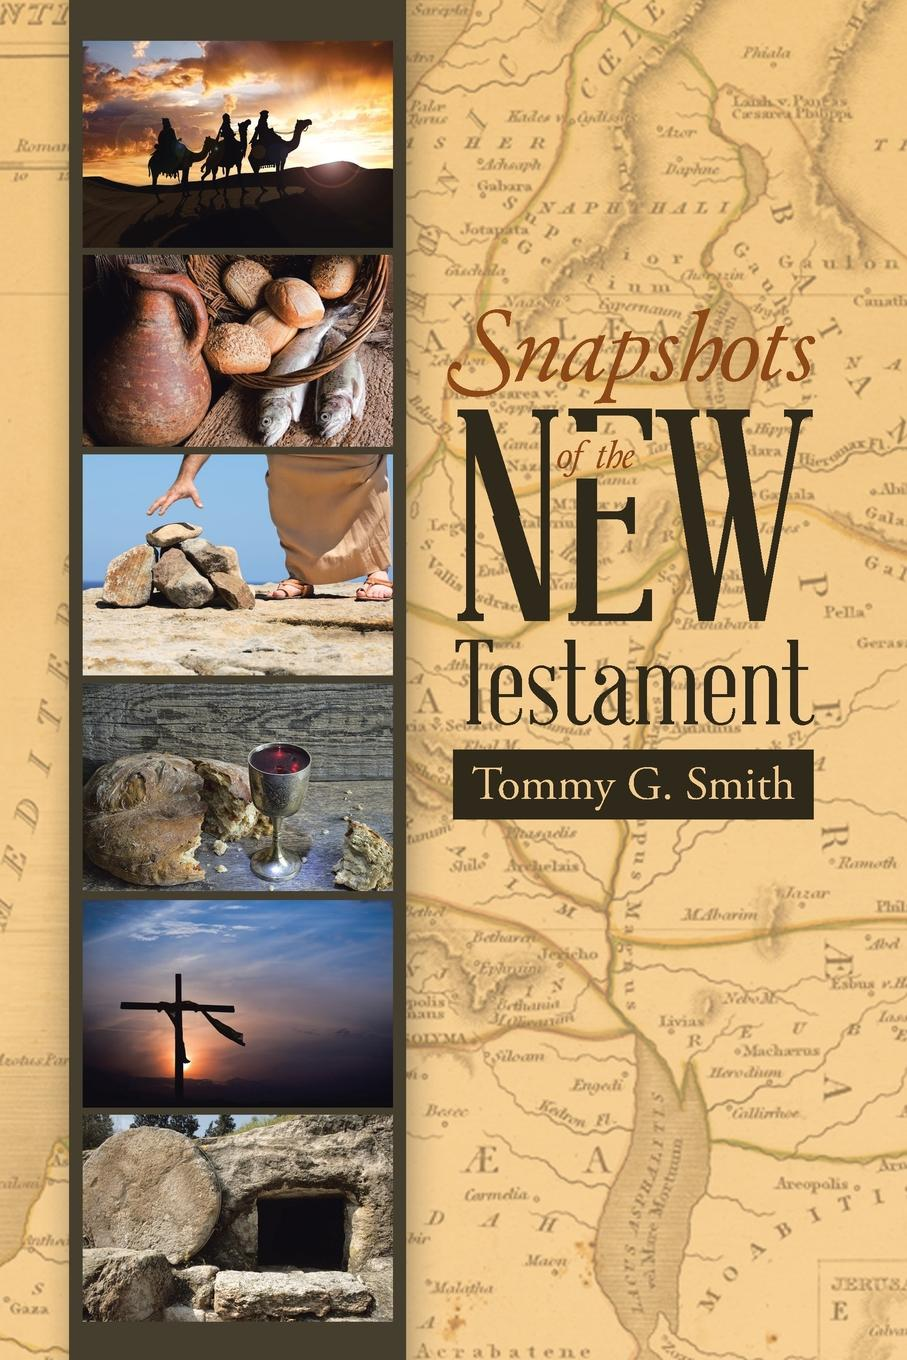 цена на Tommy G. Smith Snapshots of the New Testament. Standing On Faith Together